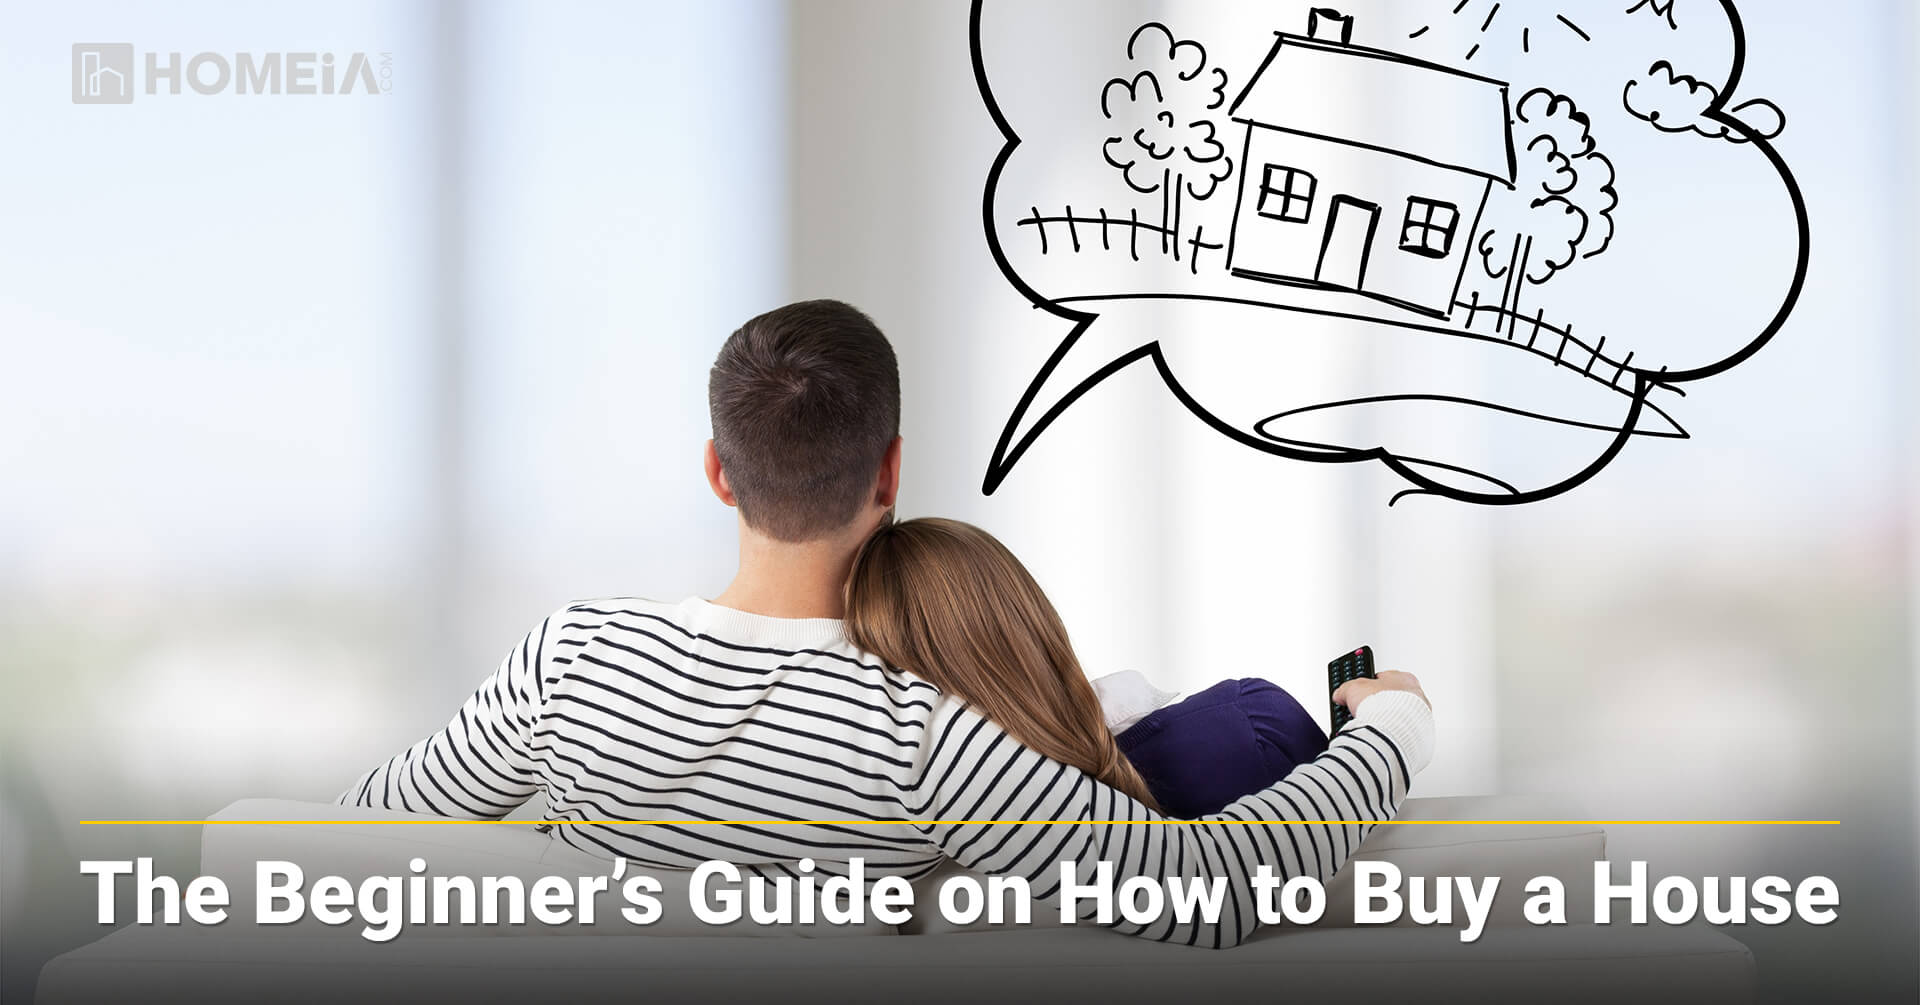 The Beginner's Guide on How to Buy a House